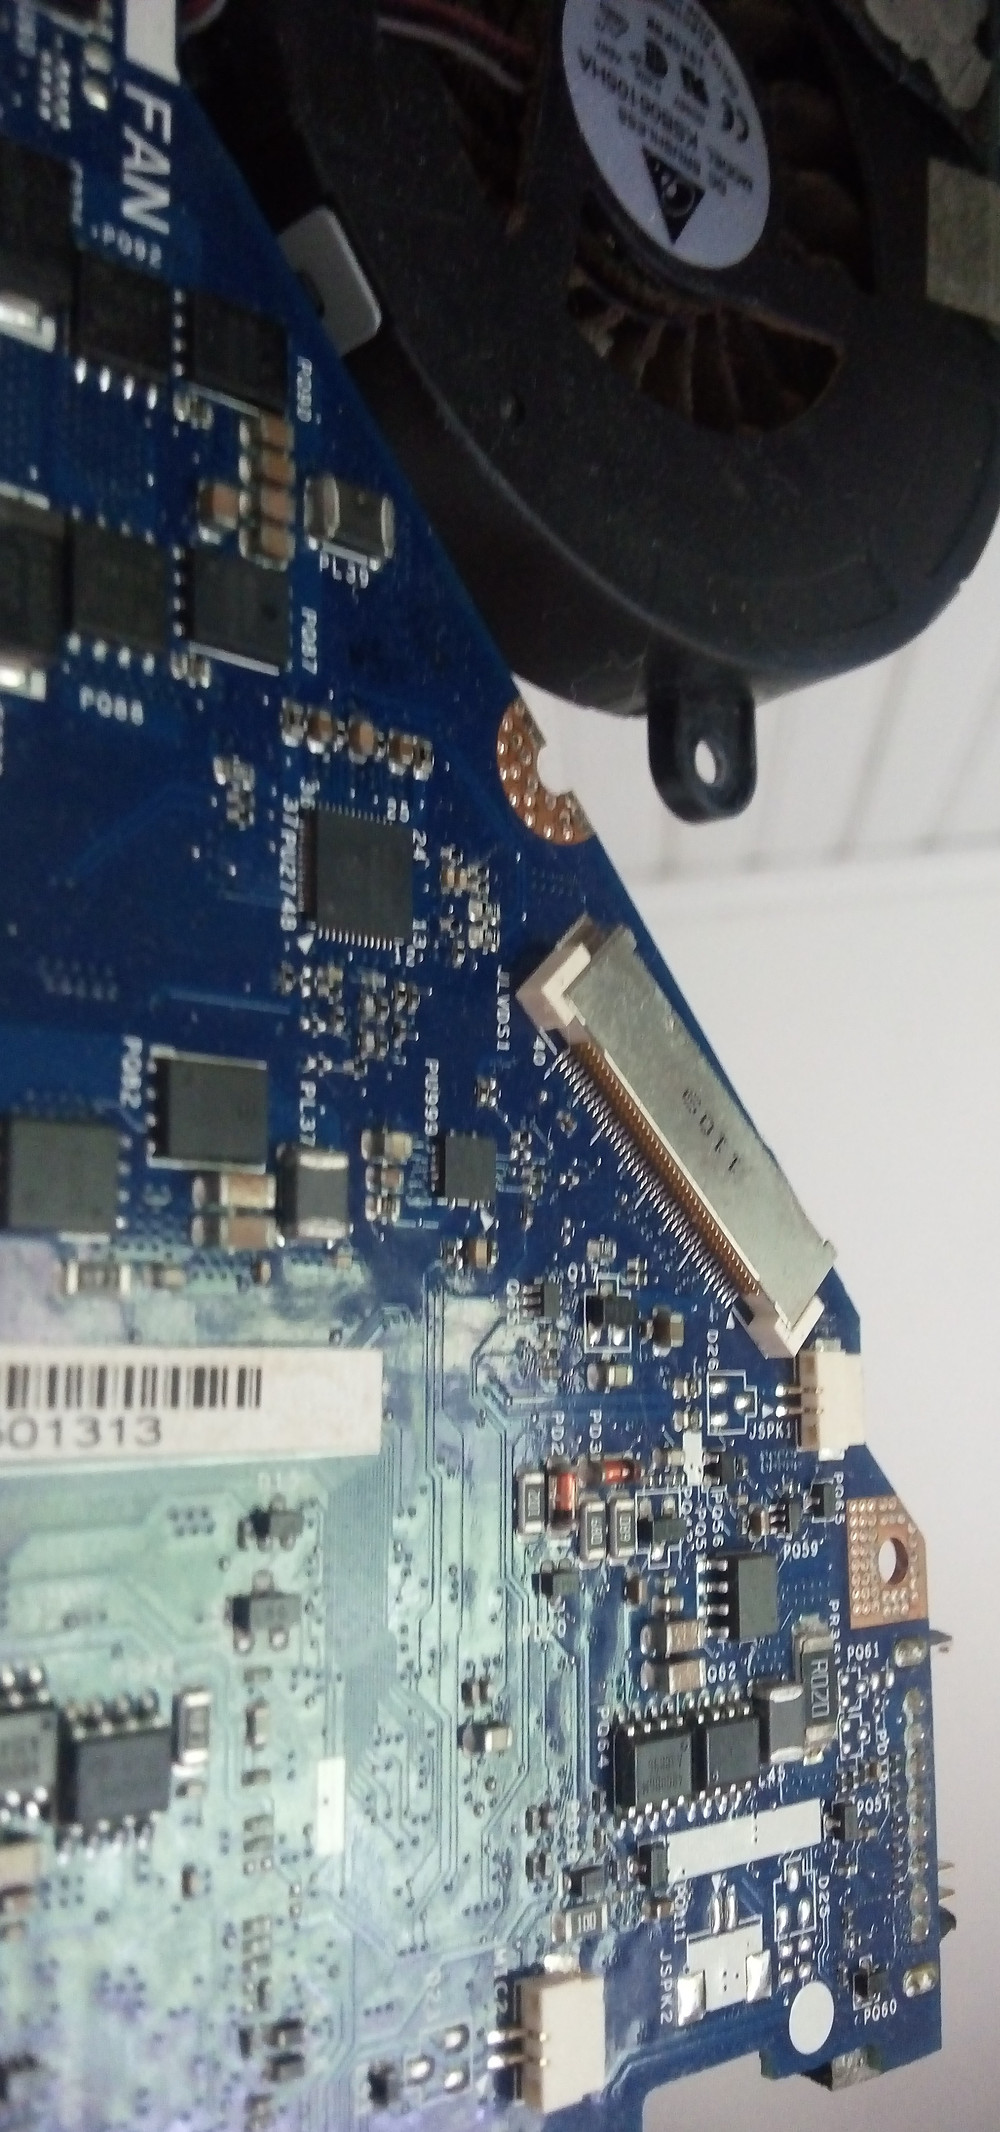 Interface LVDS na placa do Notebook